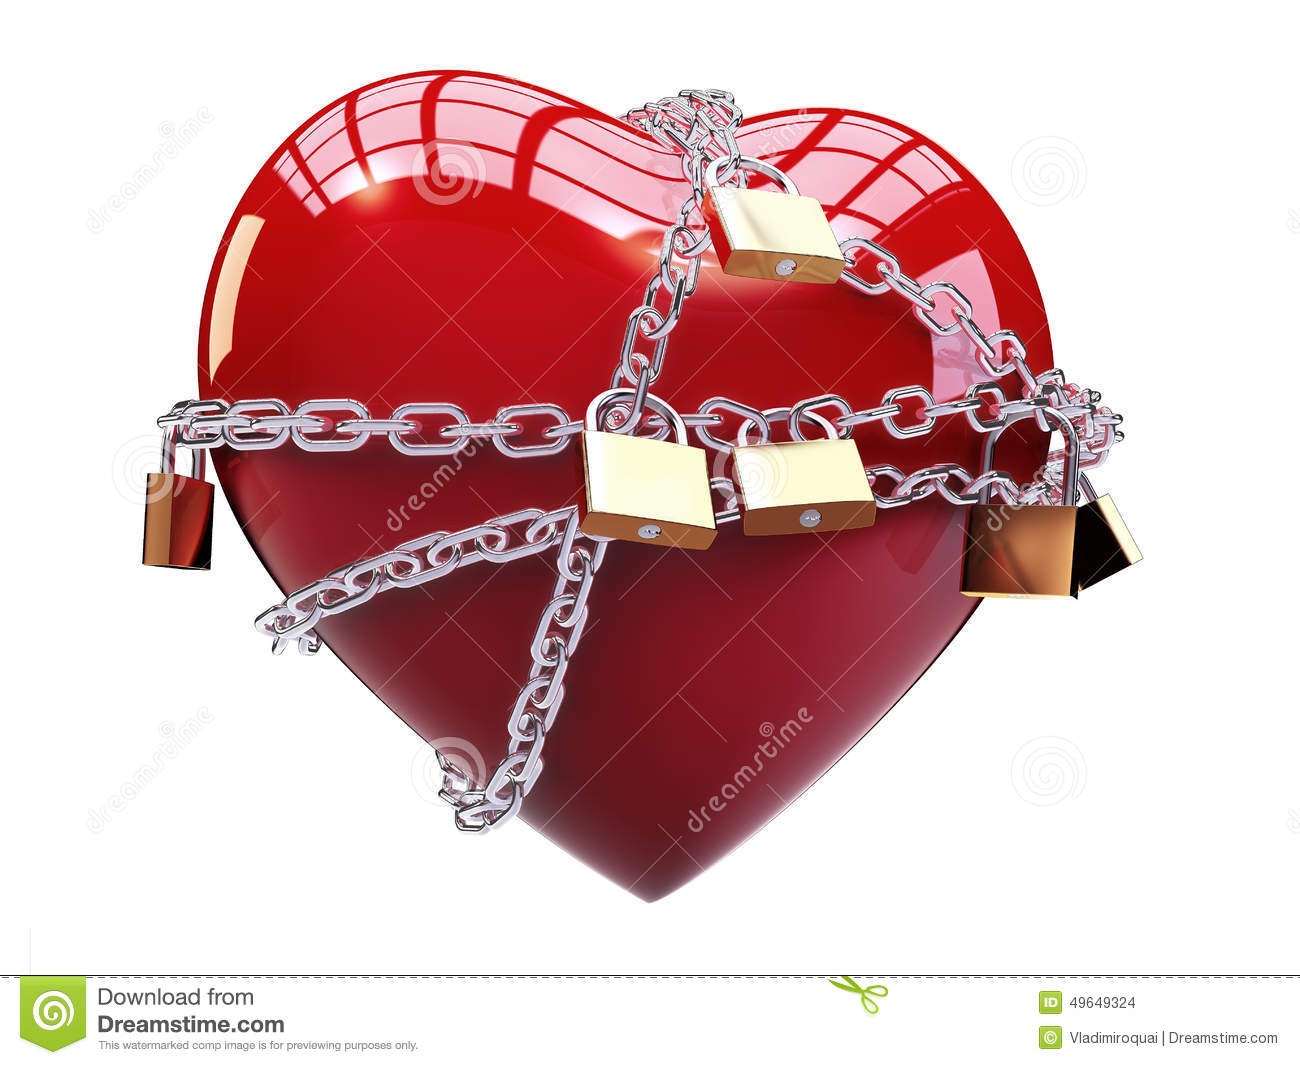 Chained heart stock illustration. Illustration of ...